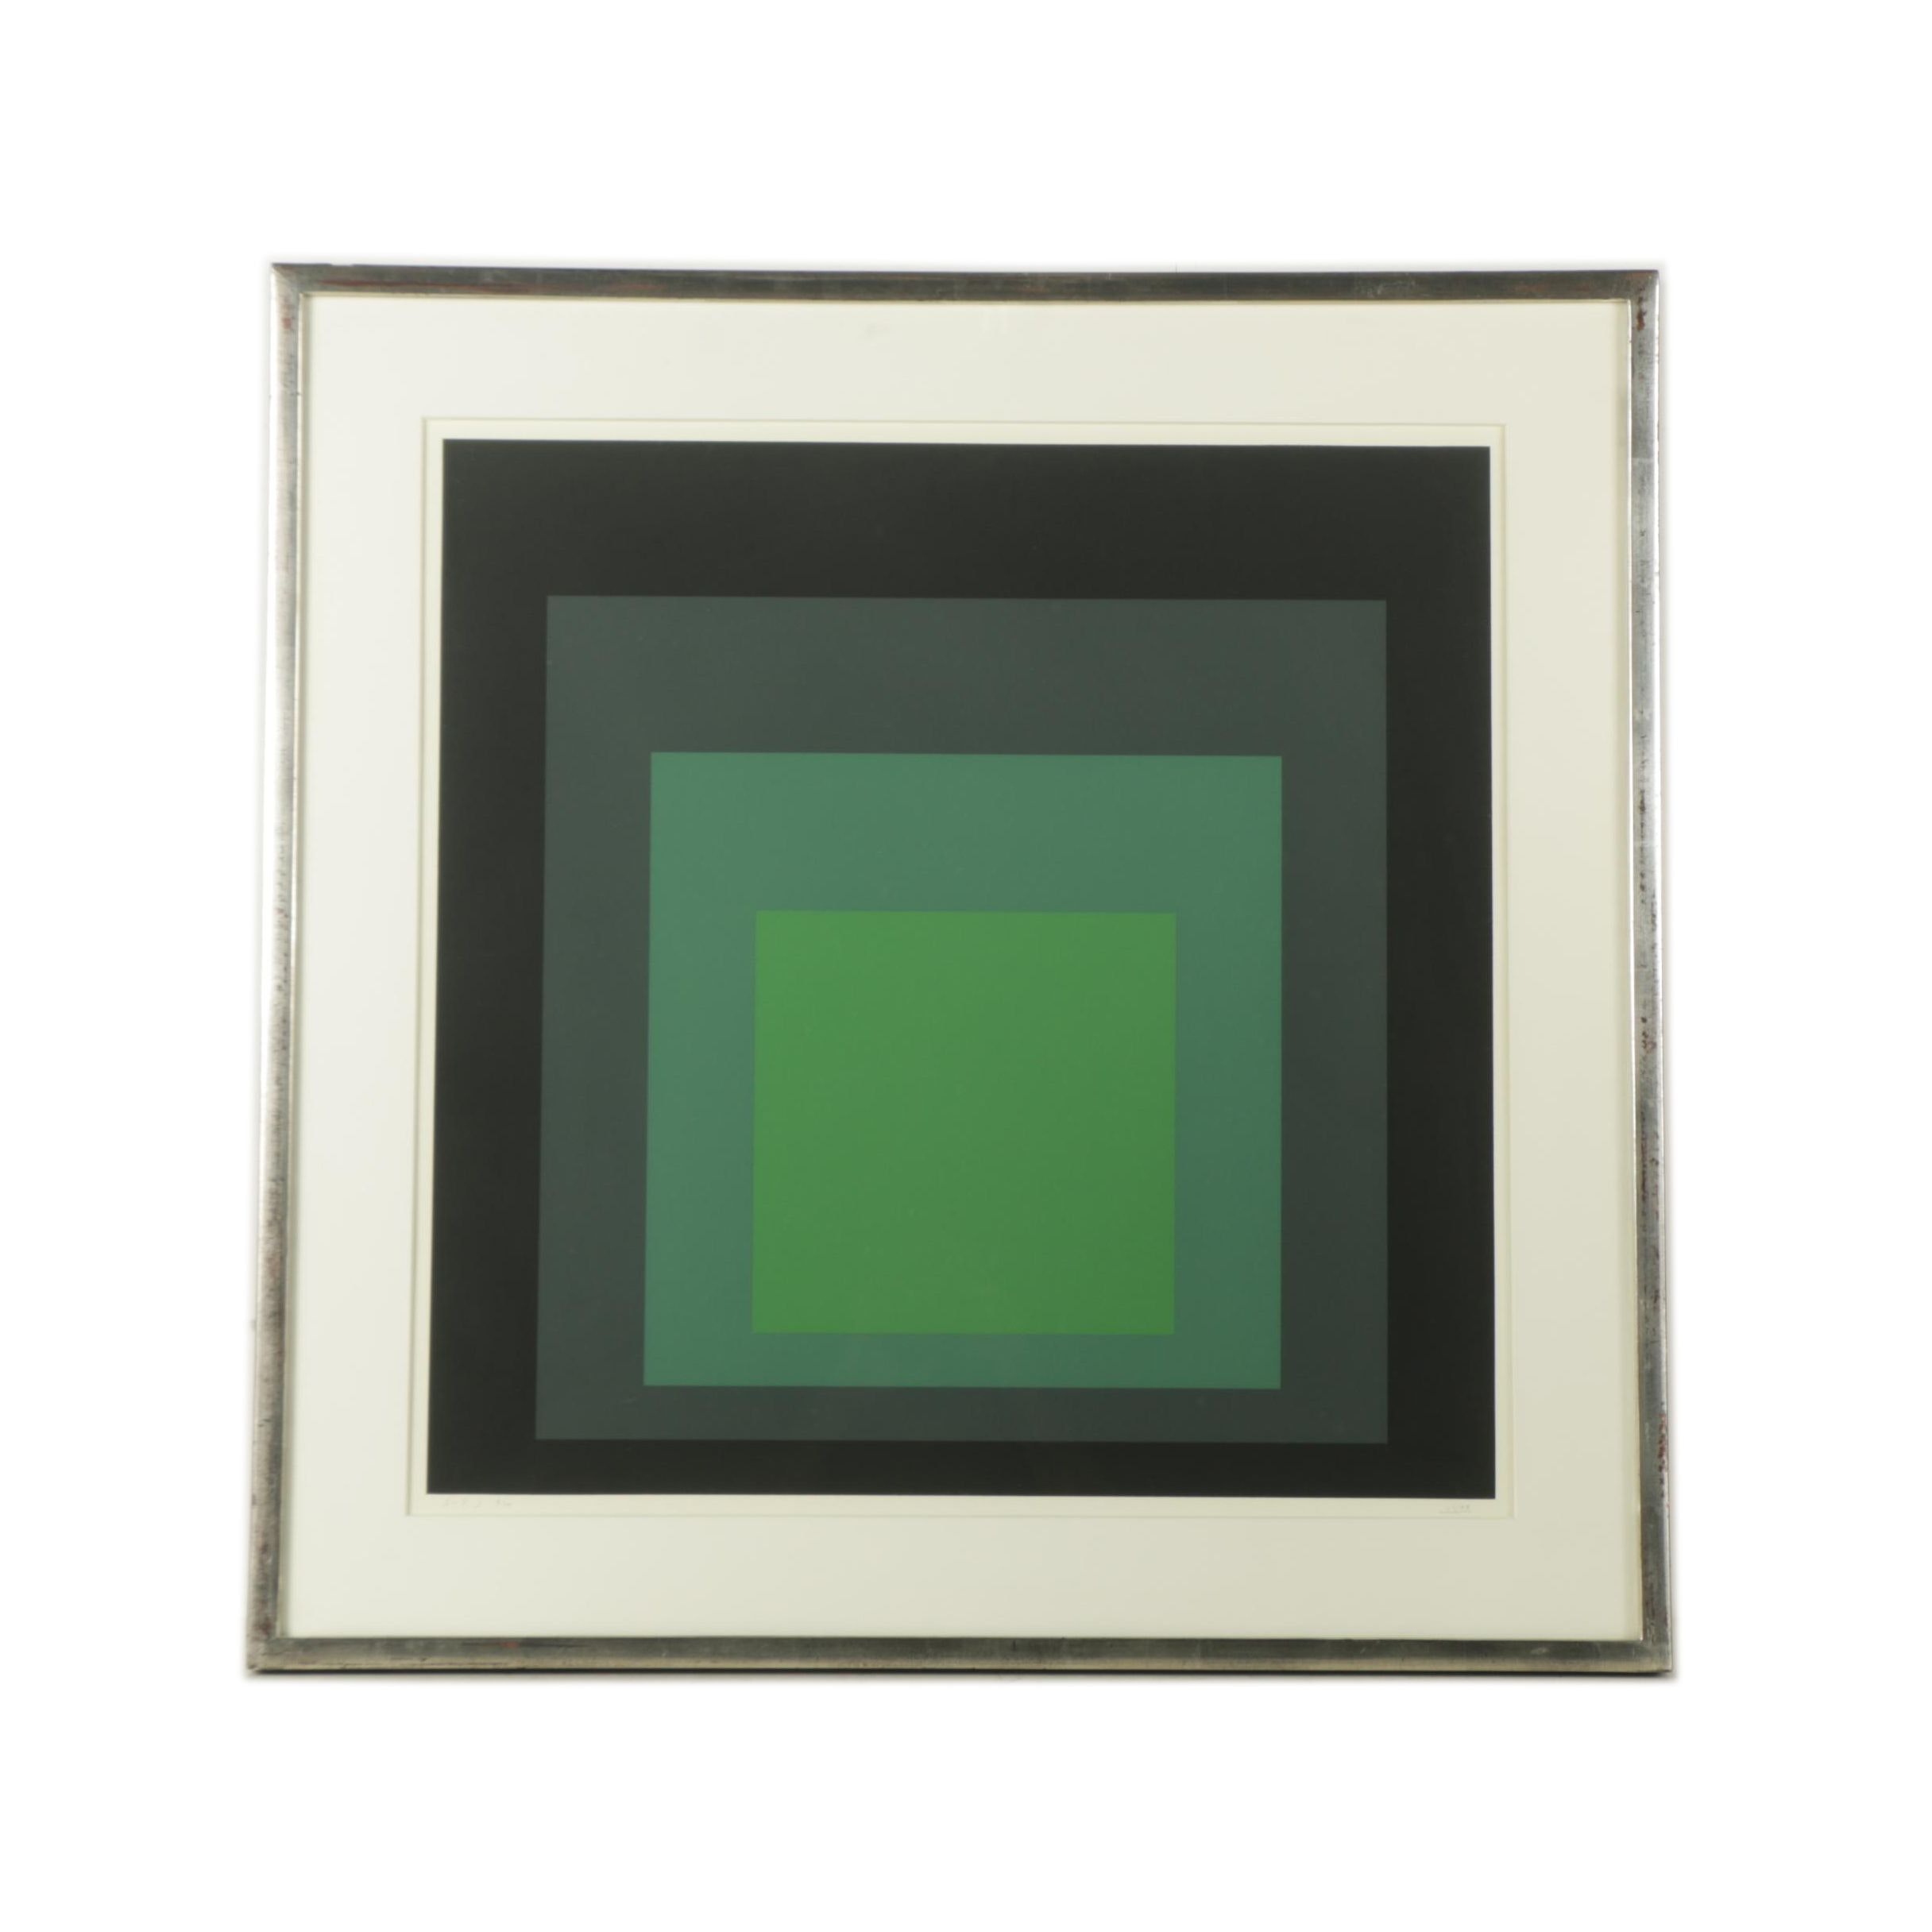 "Josef Albers Limited Edition Serigraph Print on Paper ""I-S j"""